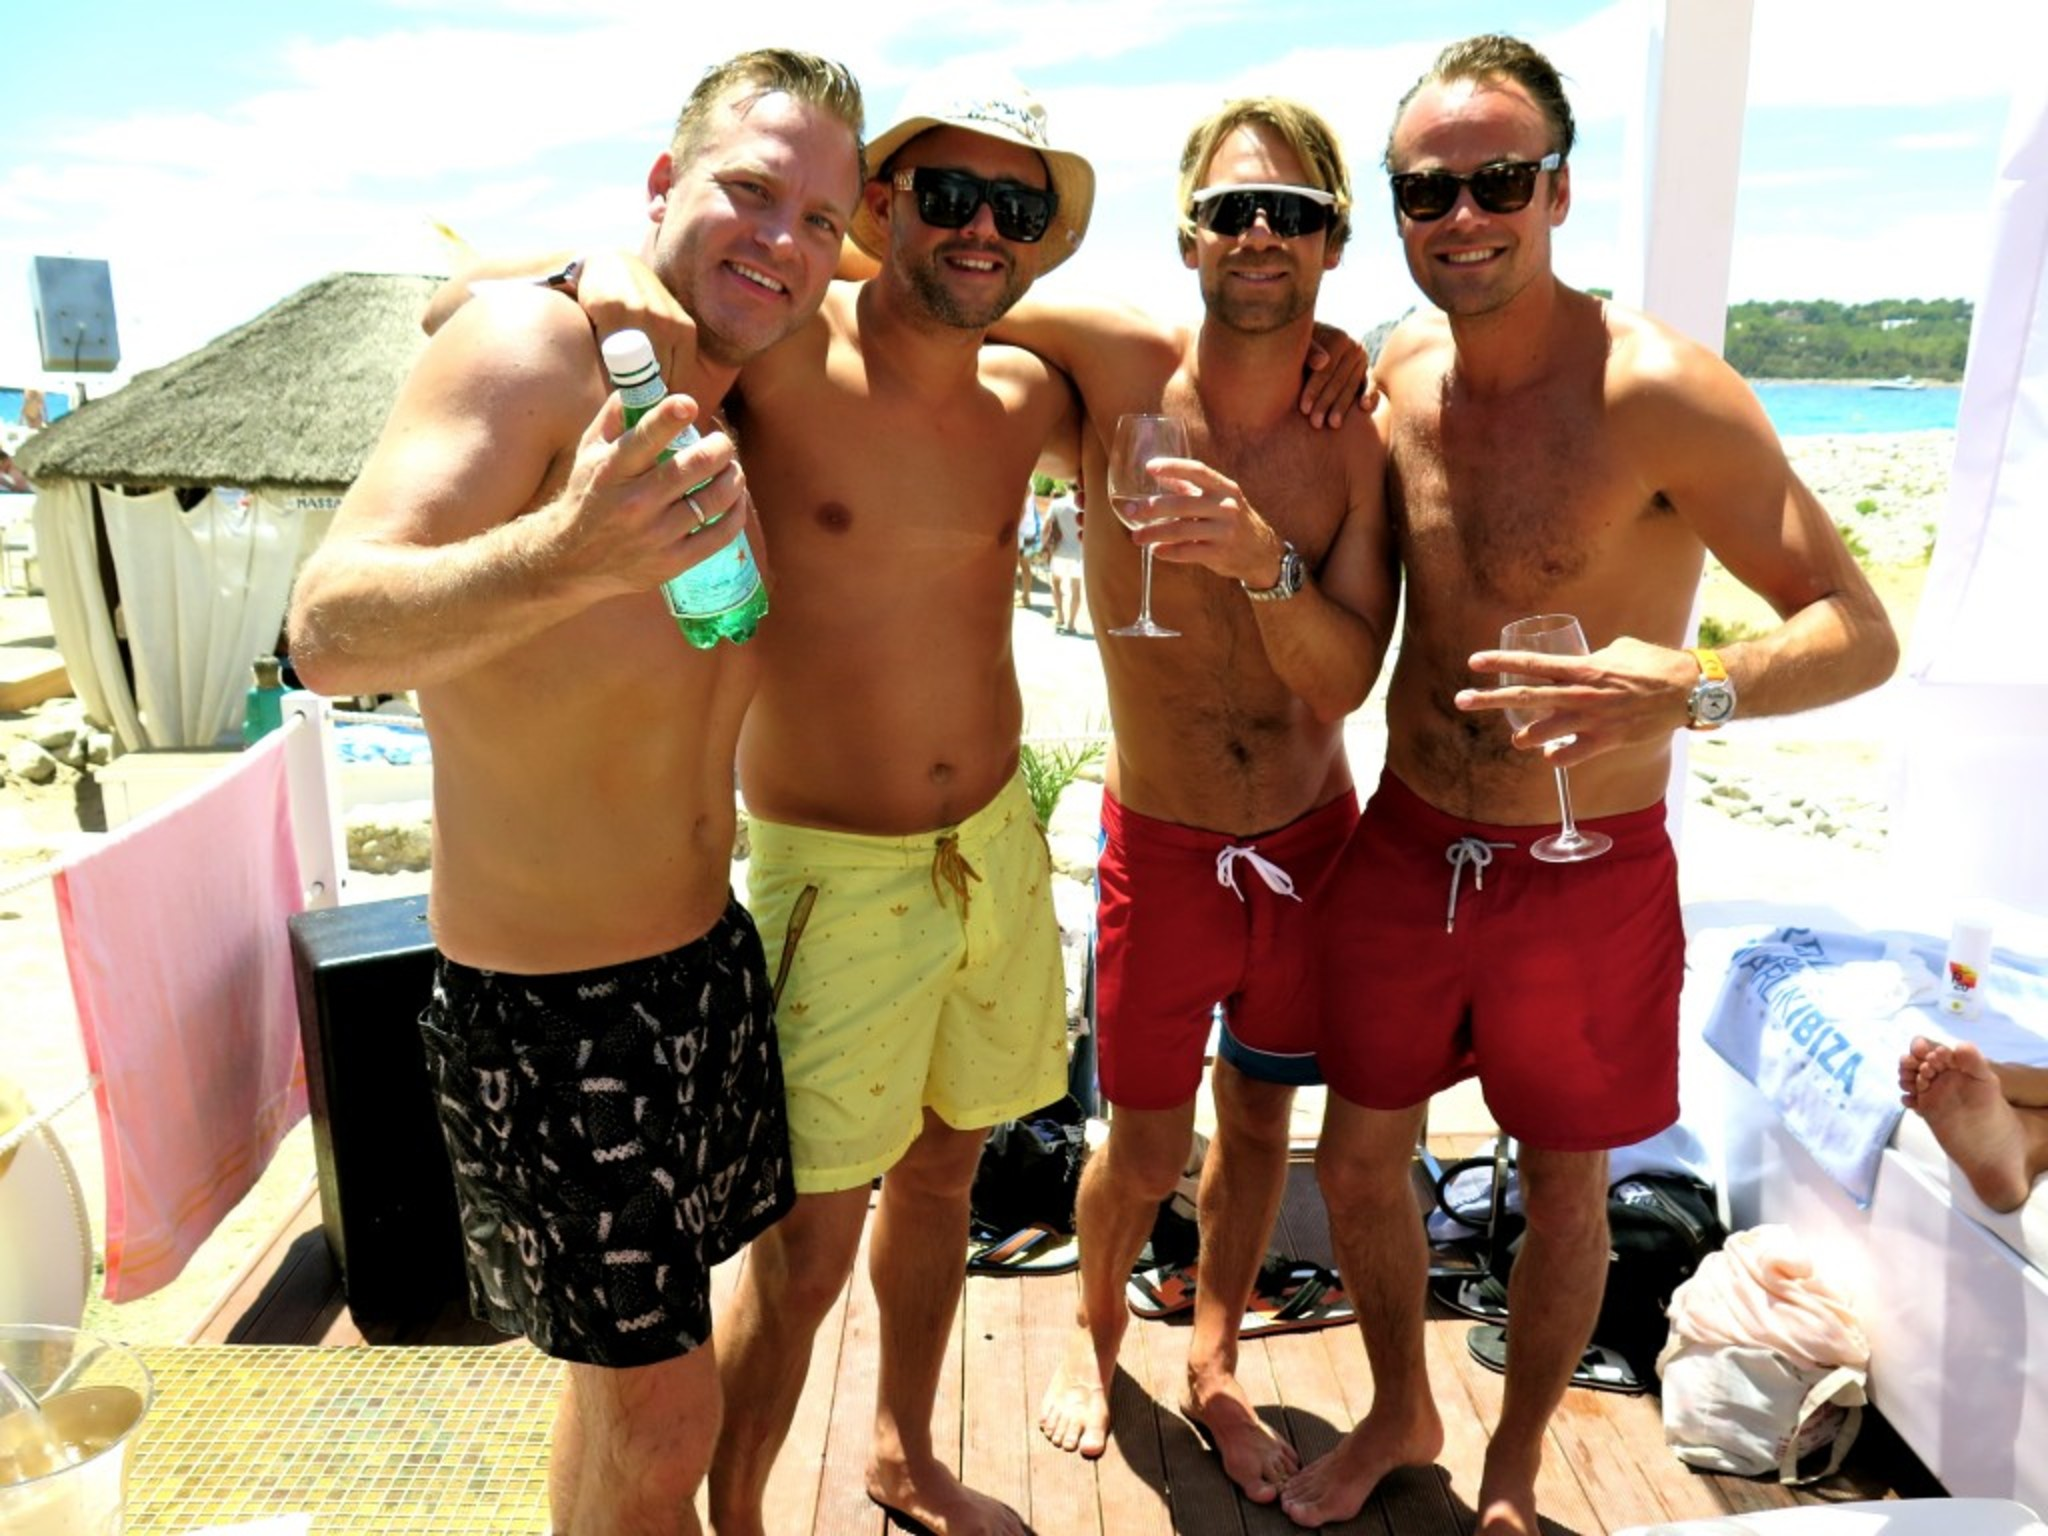 Dem Boyzzz - my Bday mr. Chris Stallion with Patski Love, DC mister Arvid and Nikolai!